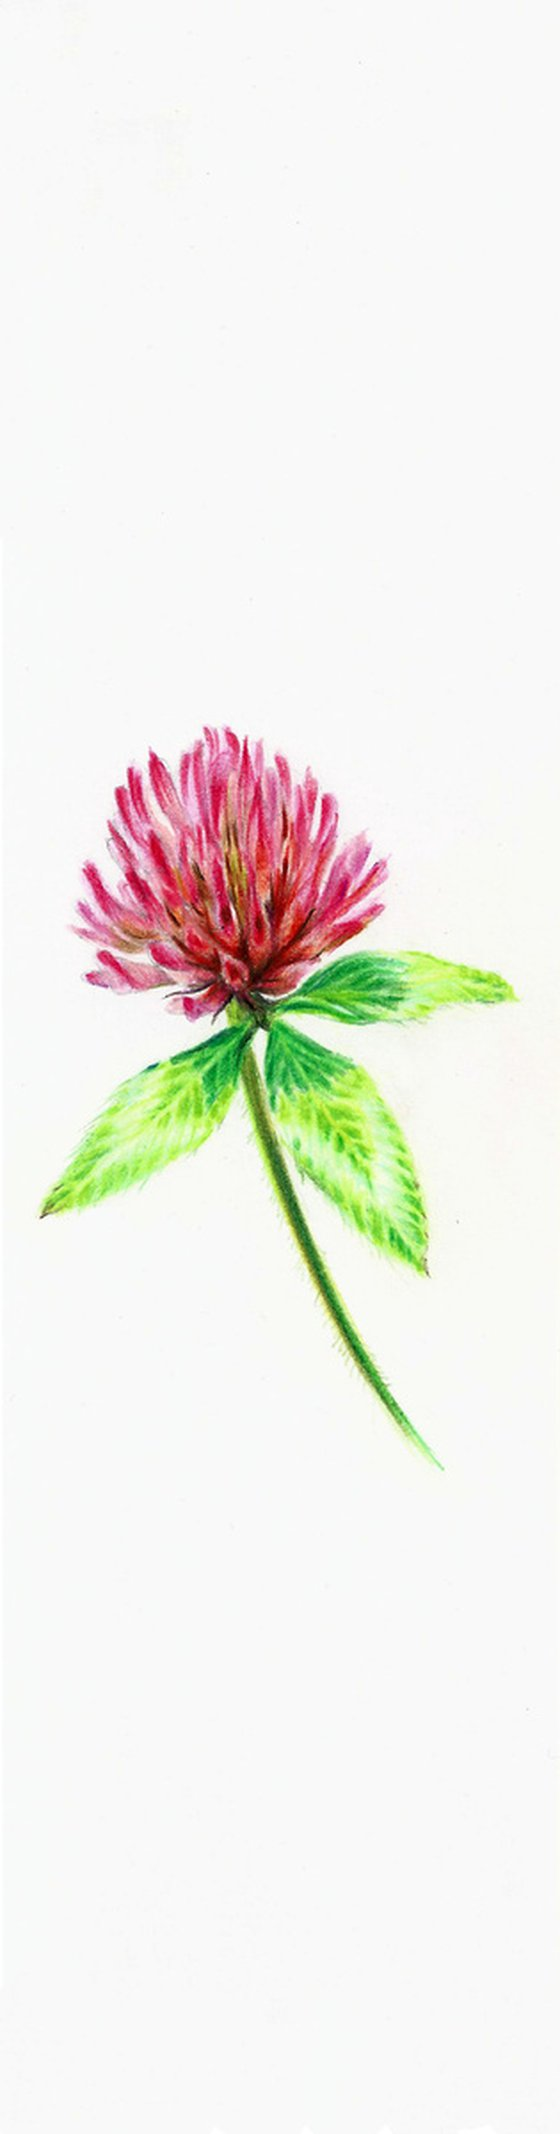 Clover Flower - from my Wildflowers Bookmarks Collection